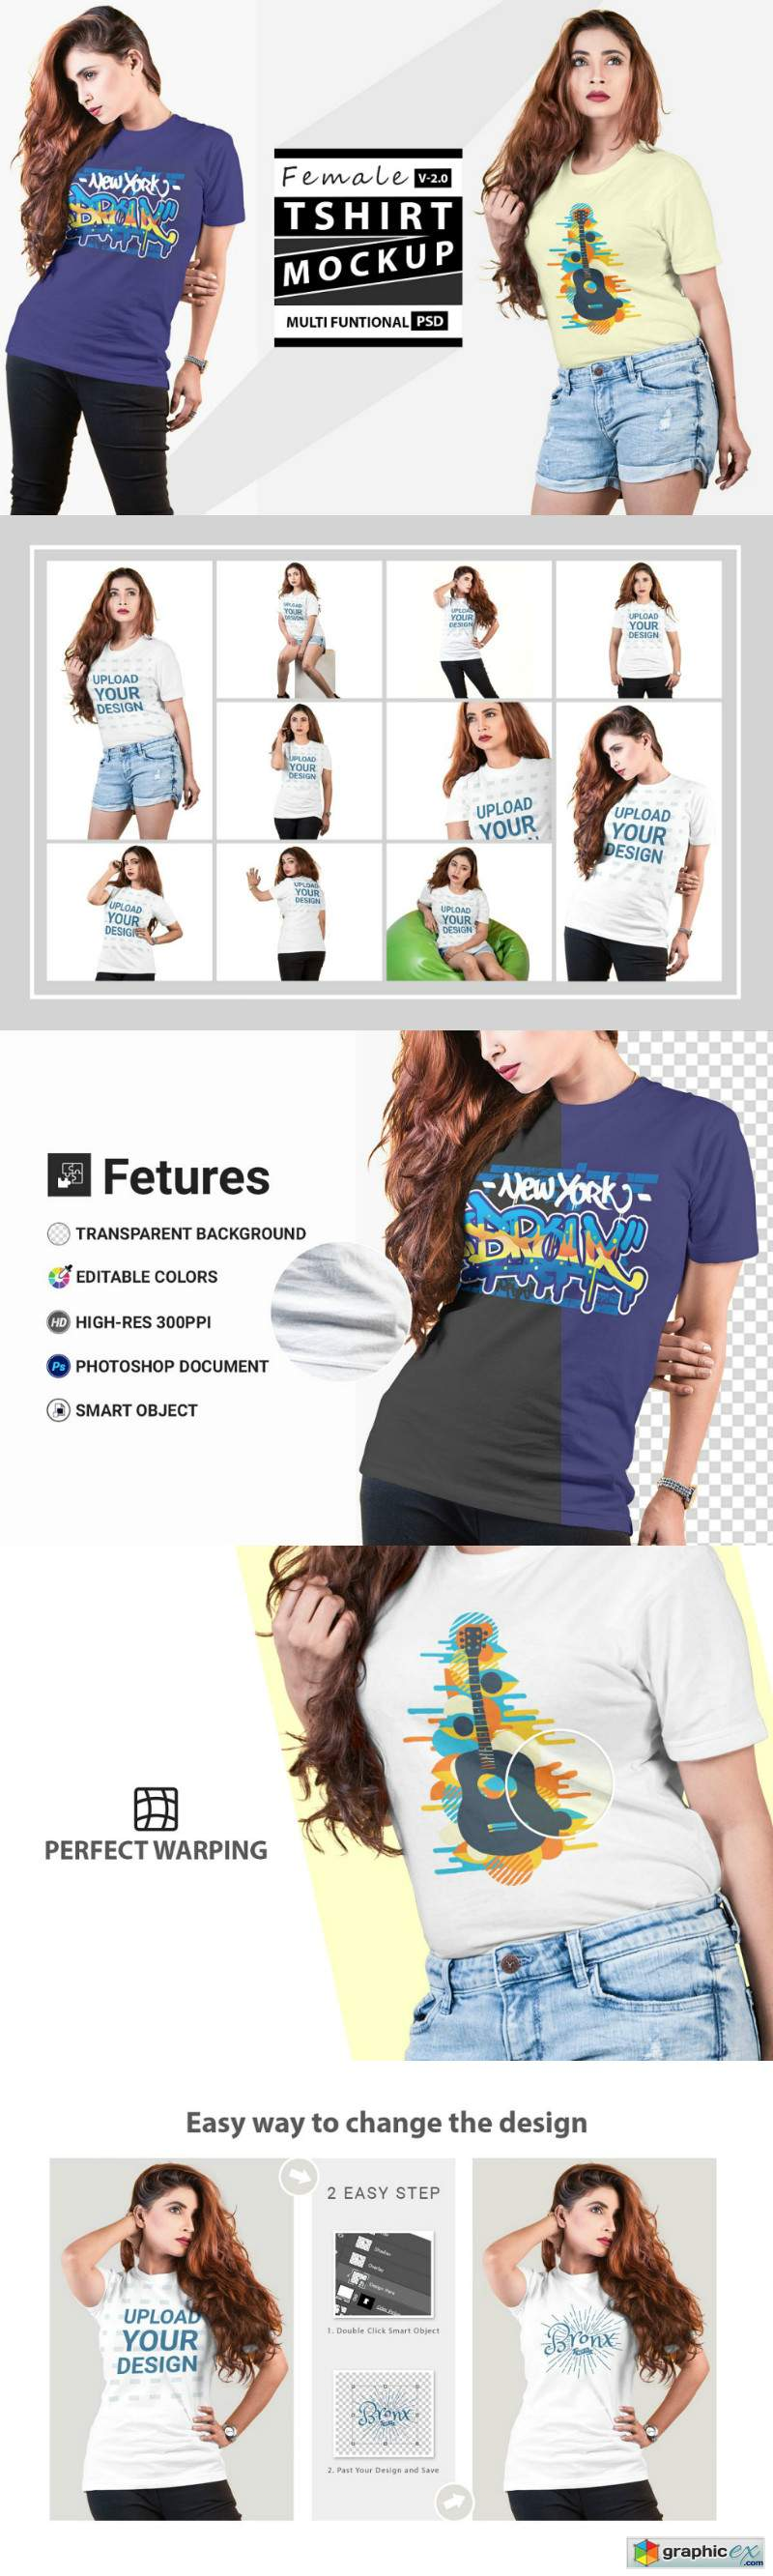 Female t-shirt Mockup-V-2-001